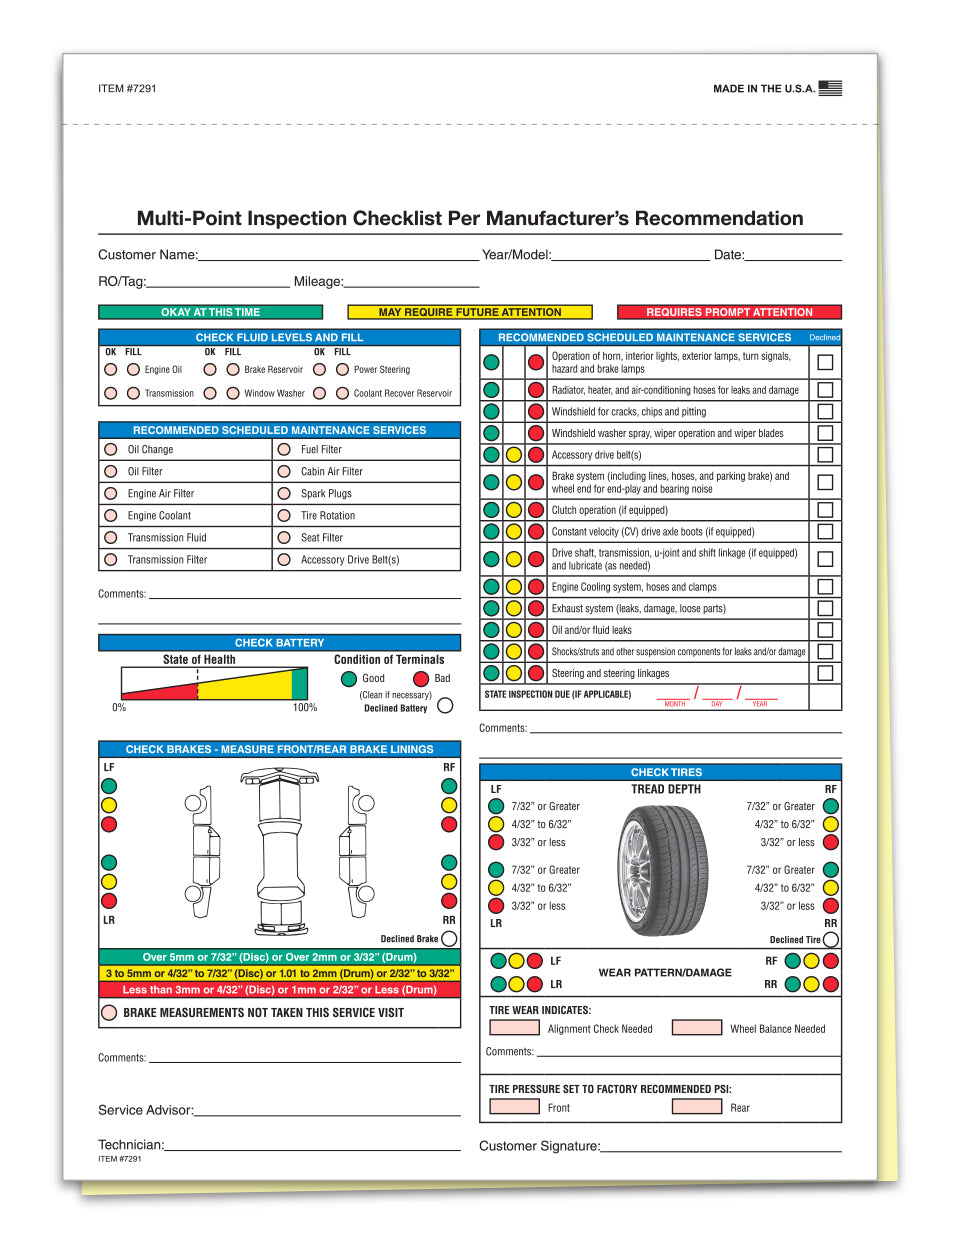 Multi-Point Inspection Forms, 2-Part, Plain